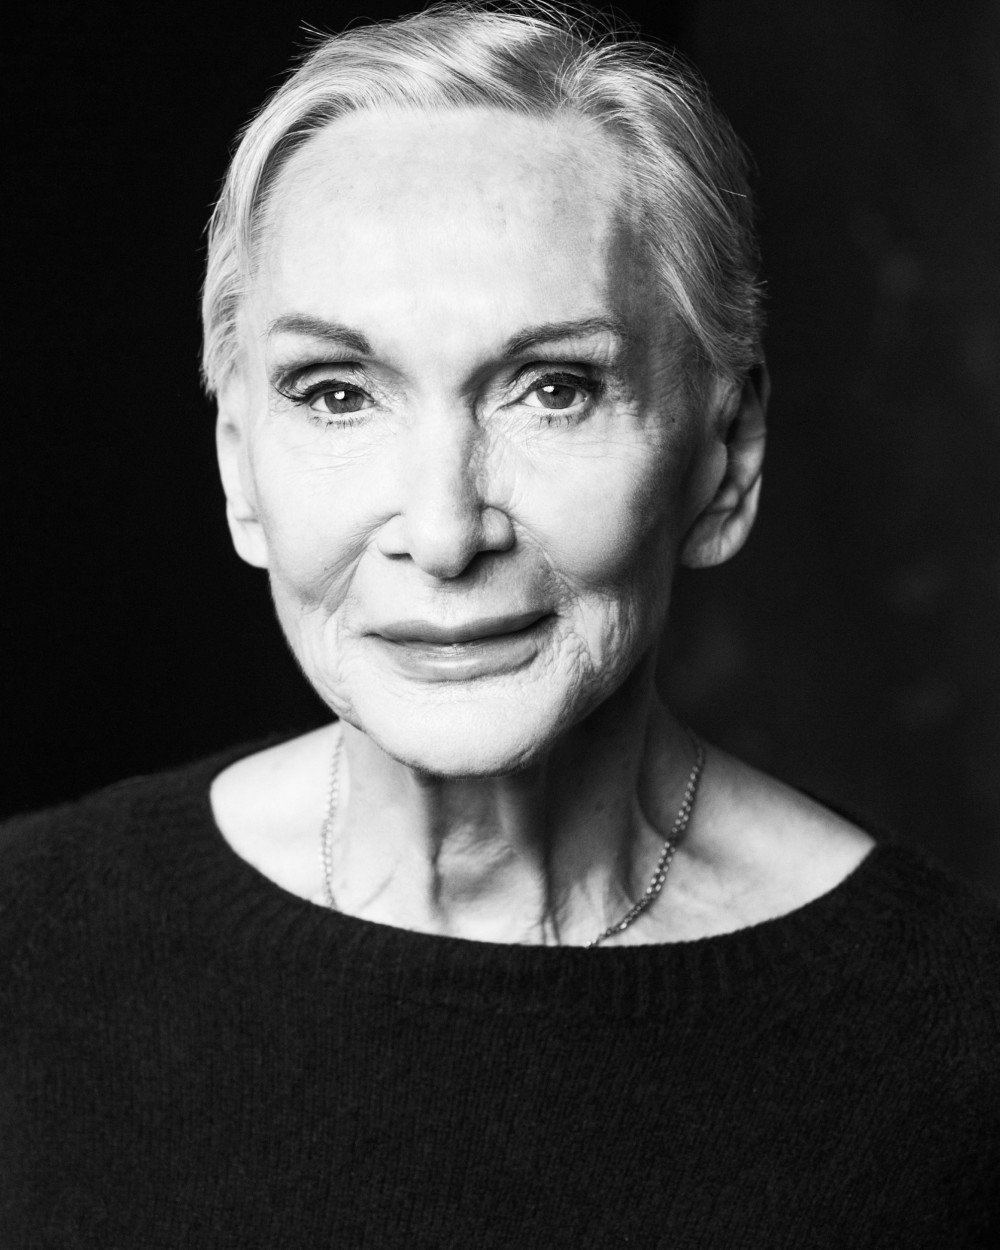 I had the pleasure of being interviewed by Theo. It is not always enjoyable; revisiting ones sometimes distant past but Theo's energy and engaging curiosity made the experience out of the ordinary and highly agreeable!I would imagine that, ability aside, this enthusiasm ,disciplined energy and relish for work will serve him well in many other contexts. - Dame Siân Phillips